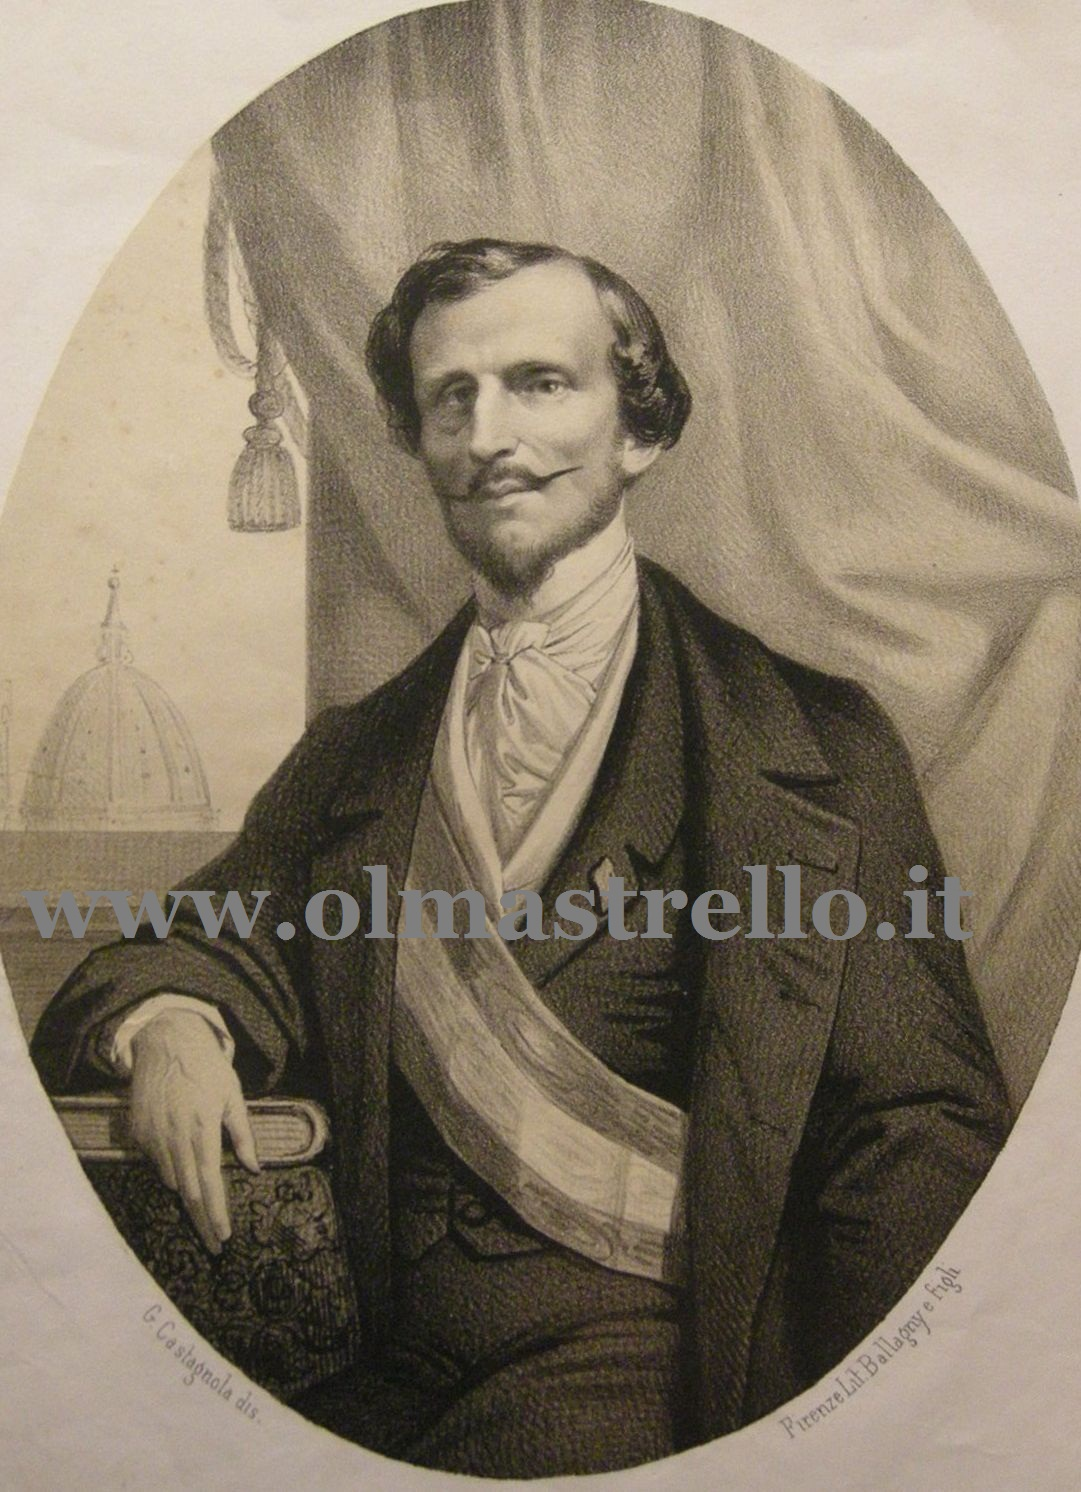 Bettino Ricasoli, il barone di Brolio